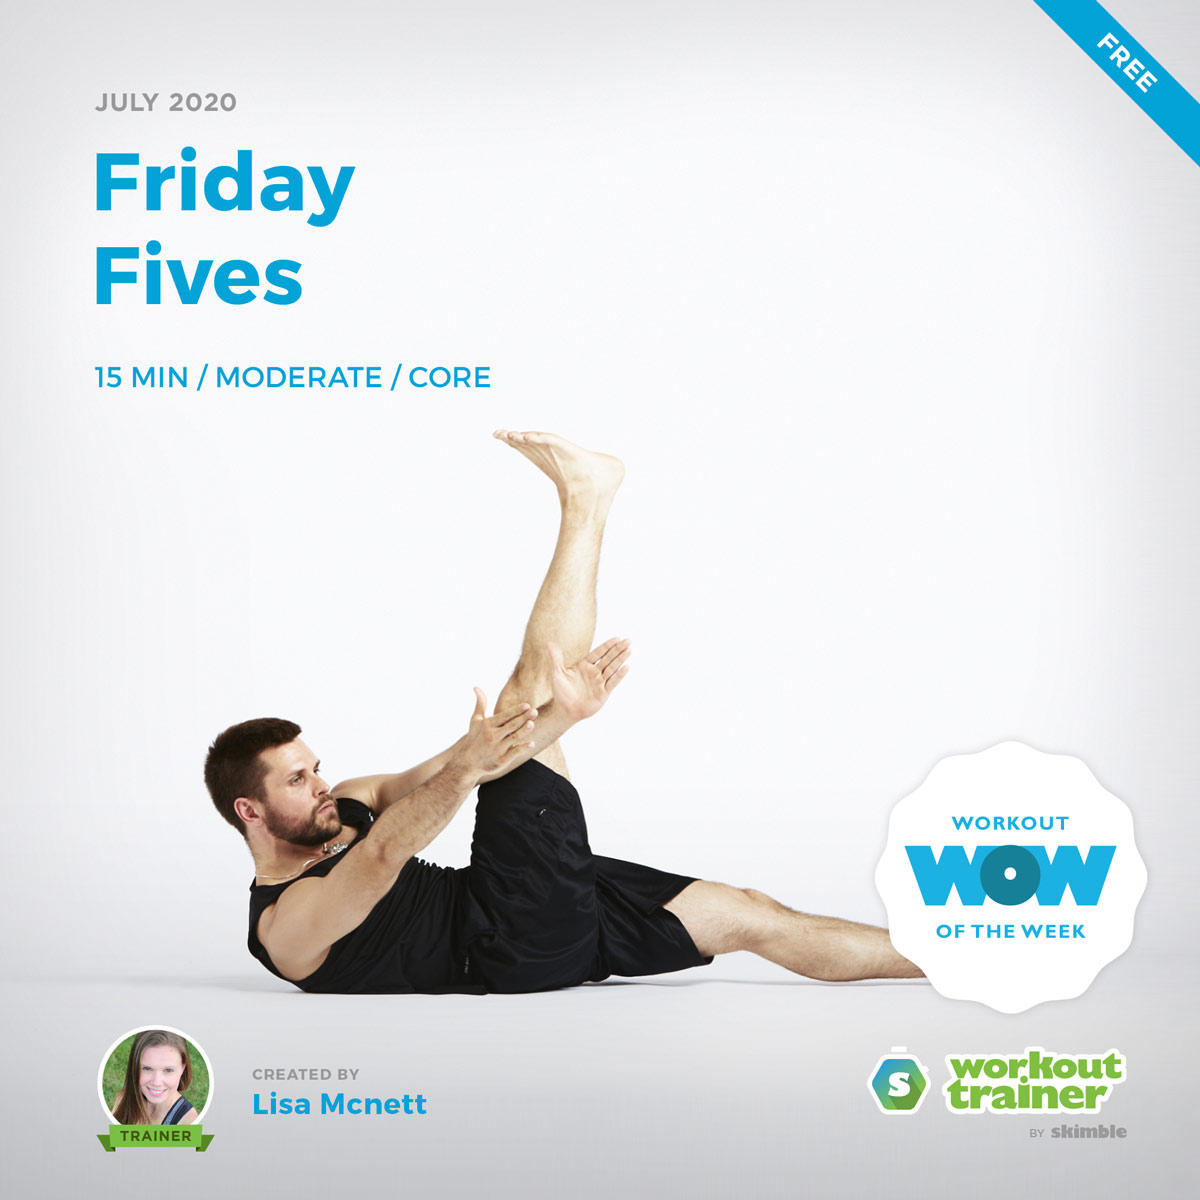 Workout Trainer by Skimble: Free Workout of the Week: Friday Fives by Lisa Mcnett